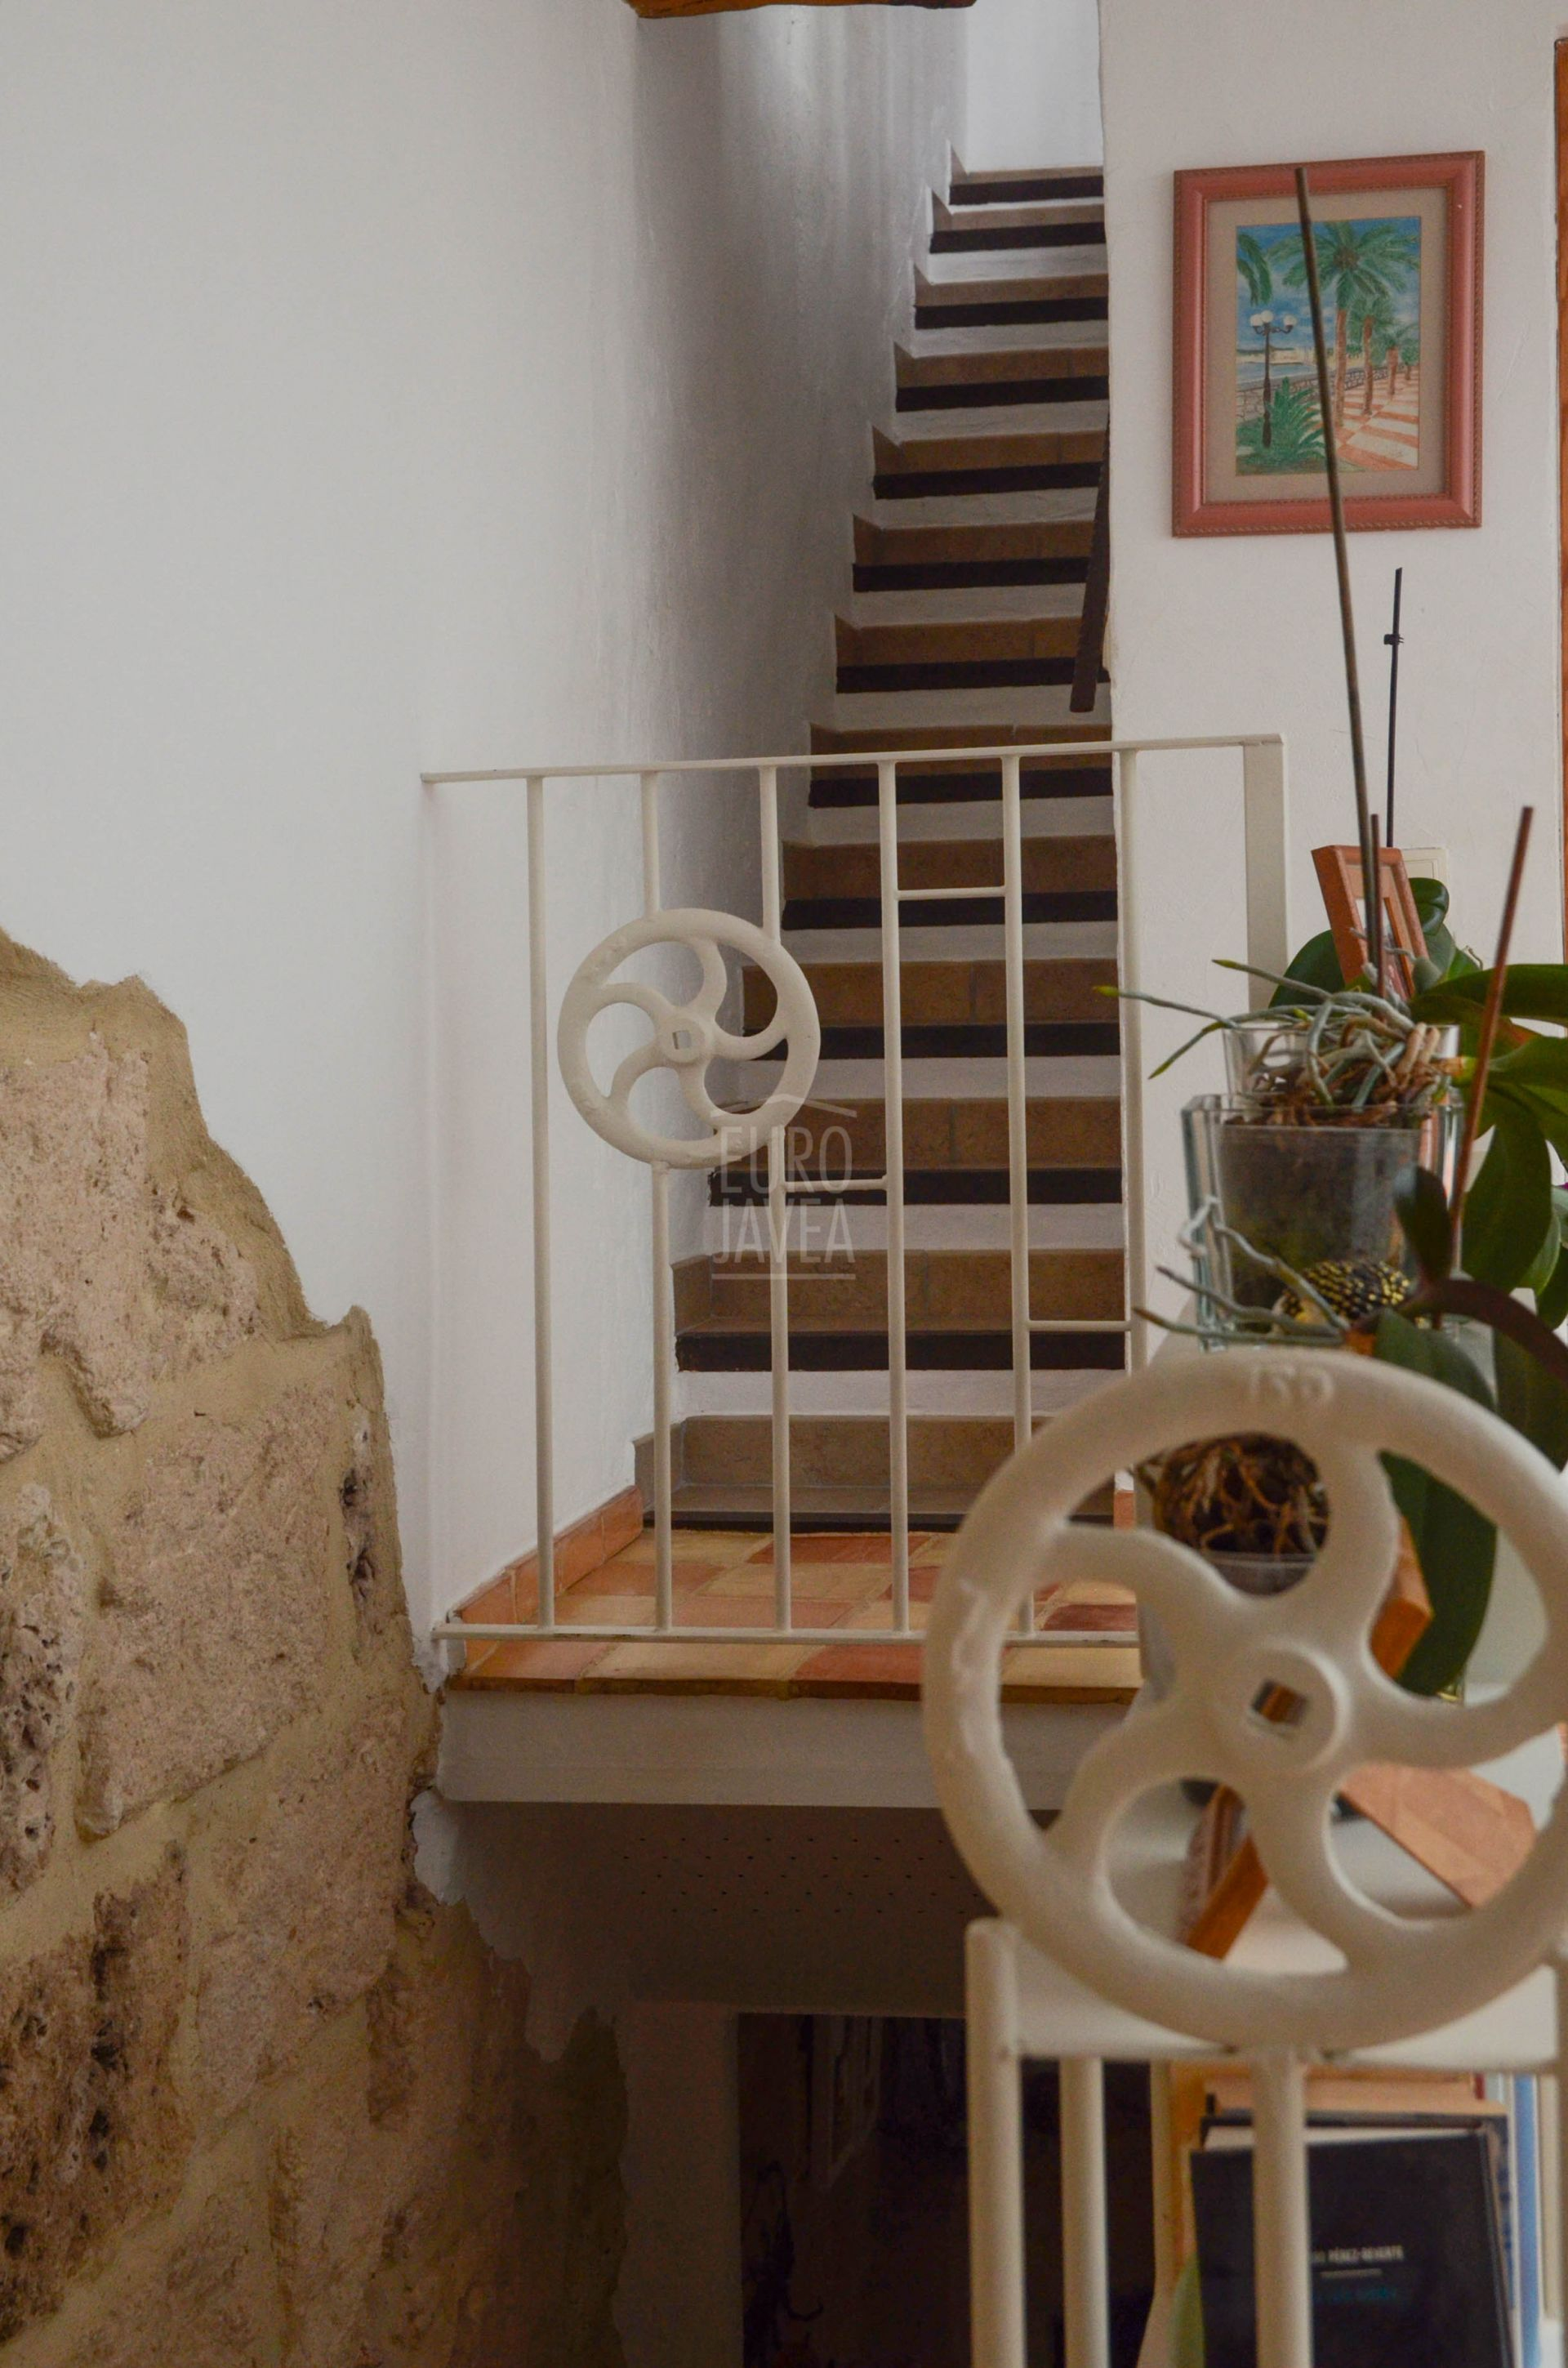 Typical townhouse for sale in Jávea in the center of the old town